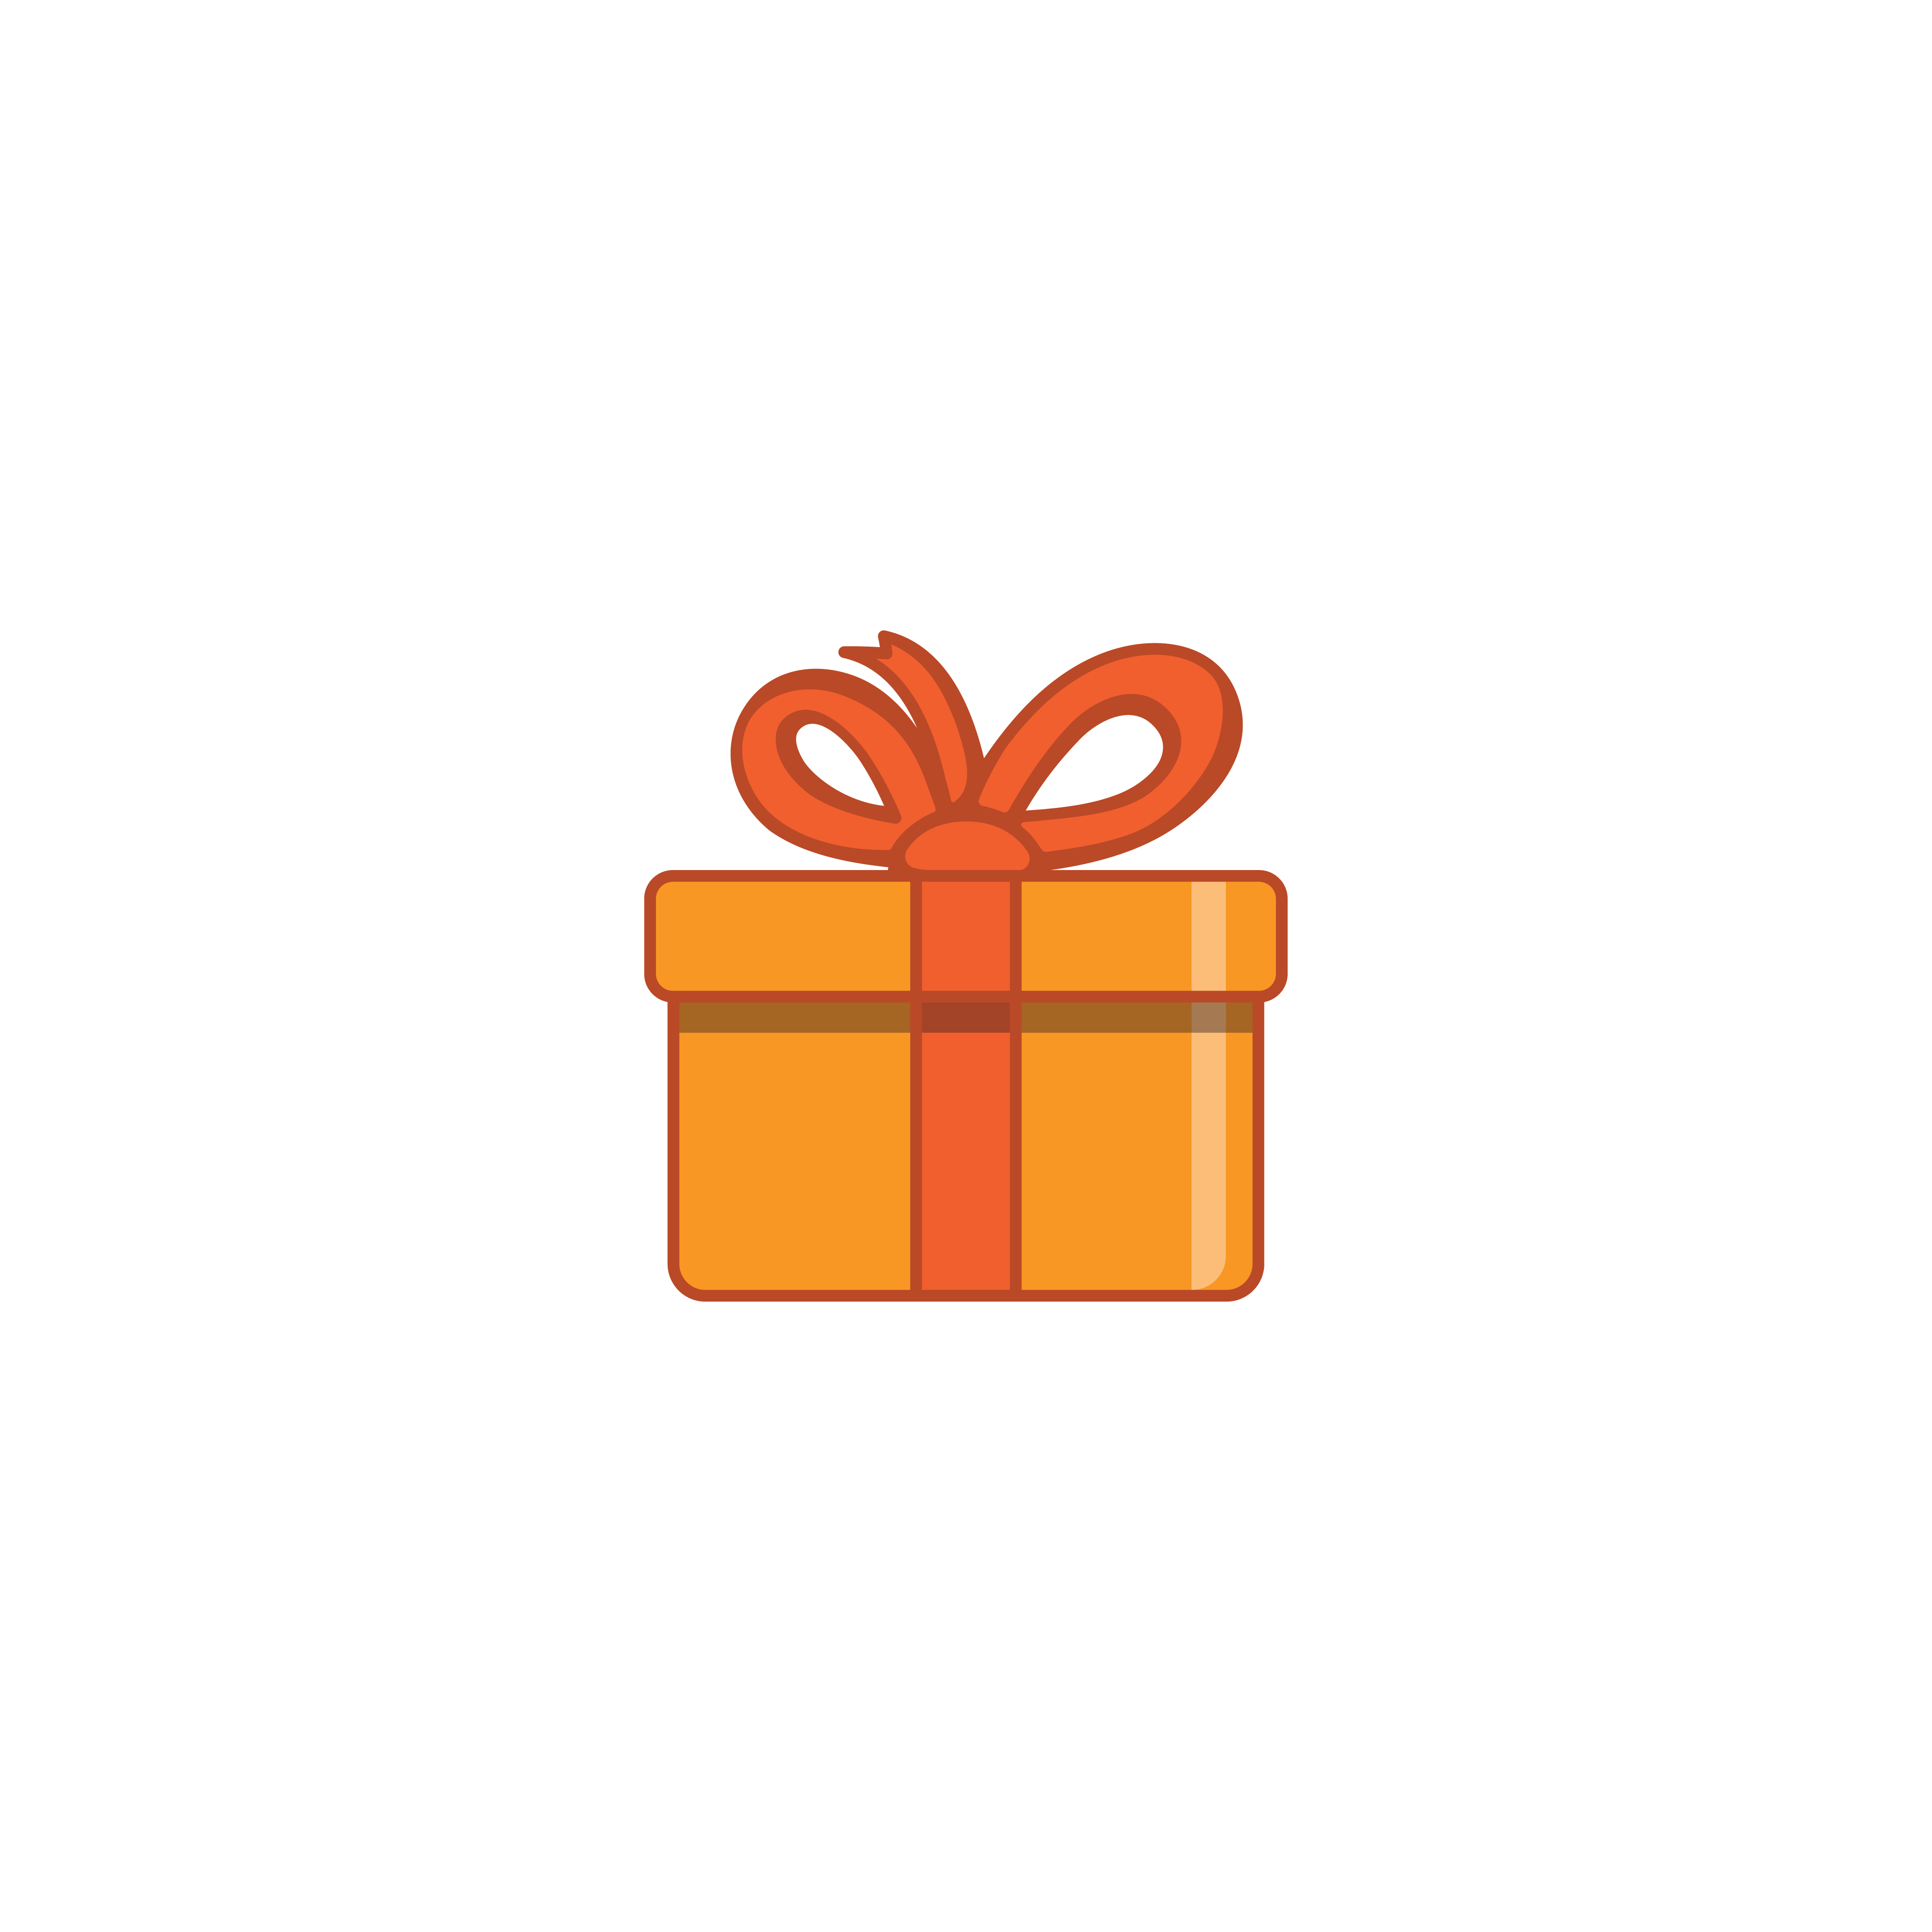 Need a stylish, elegant logo for a small gift box business.